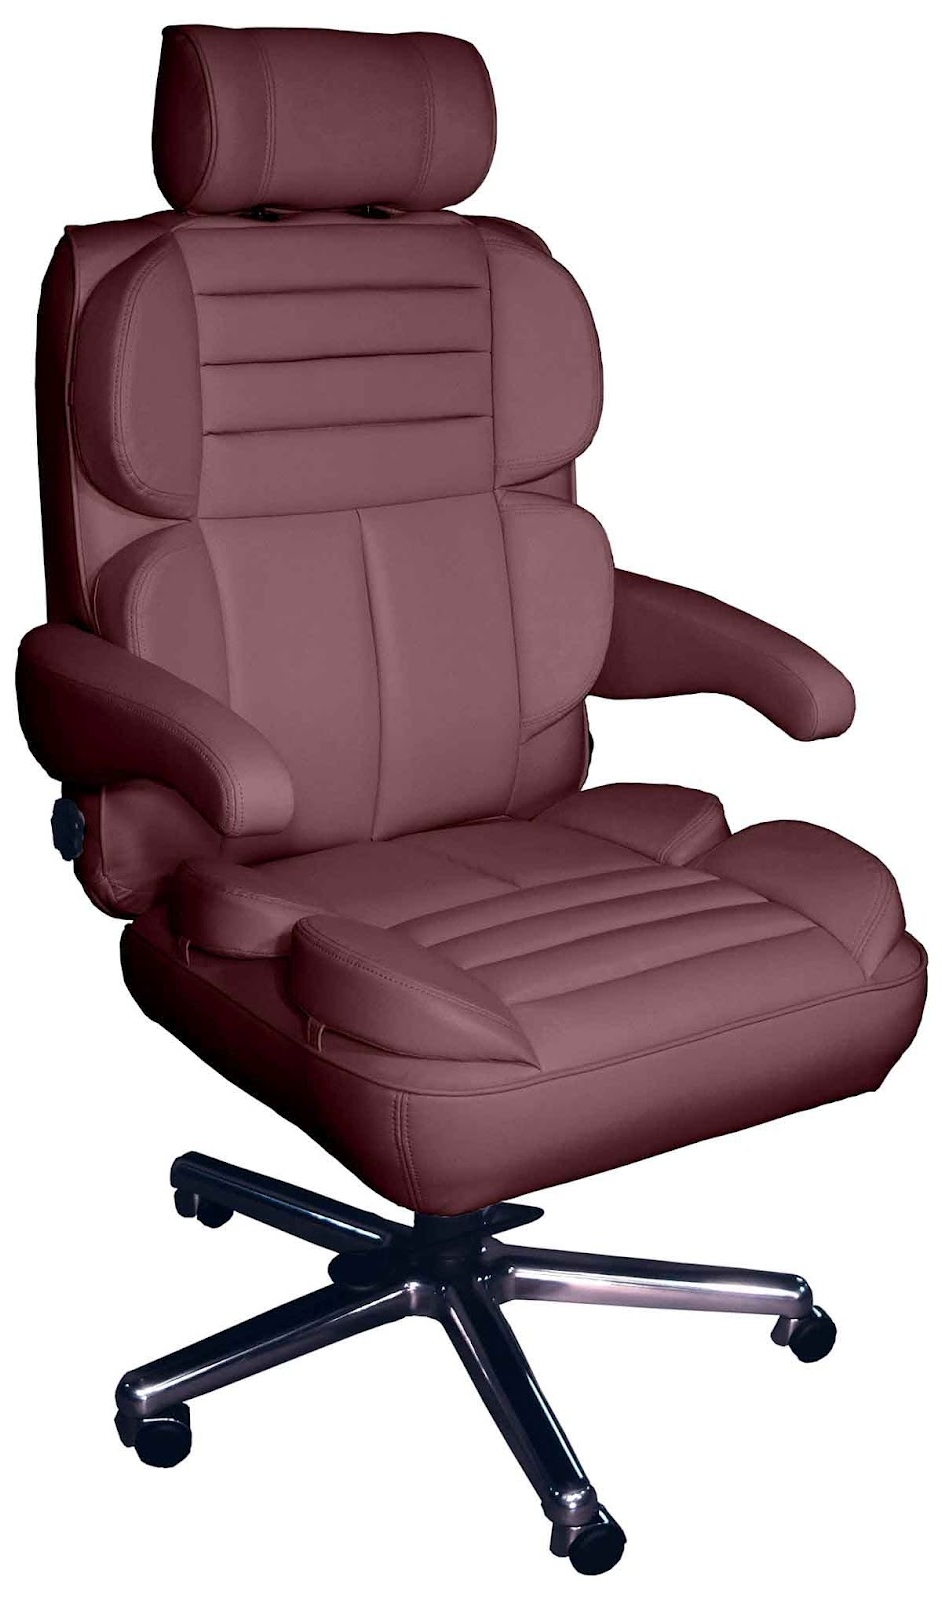 Oversized Executive Office Chairs In Current Office Chairs (View 12 of 20)